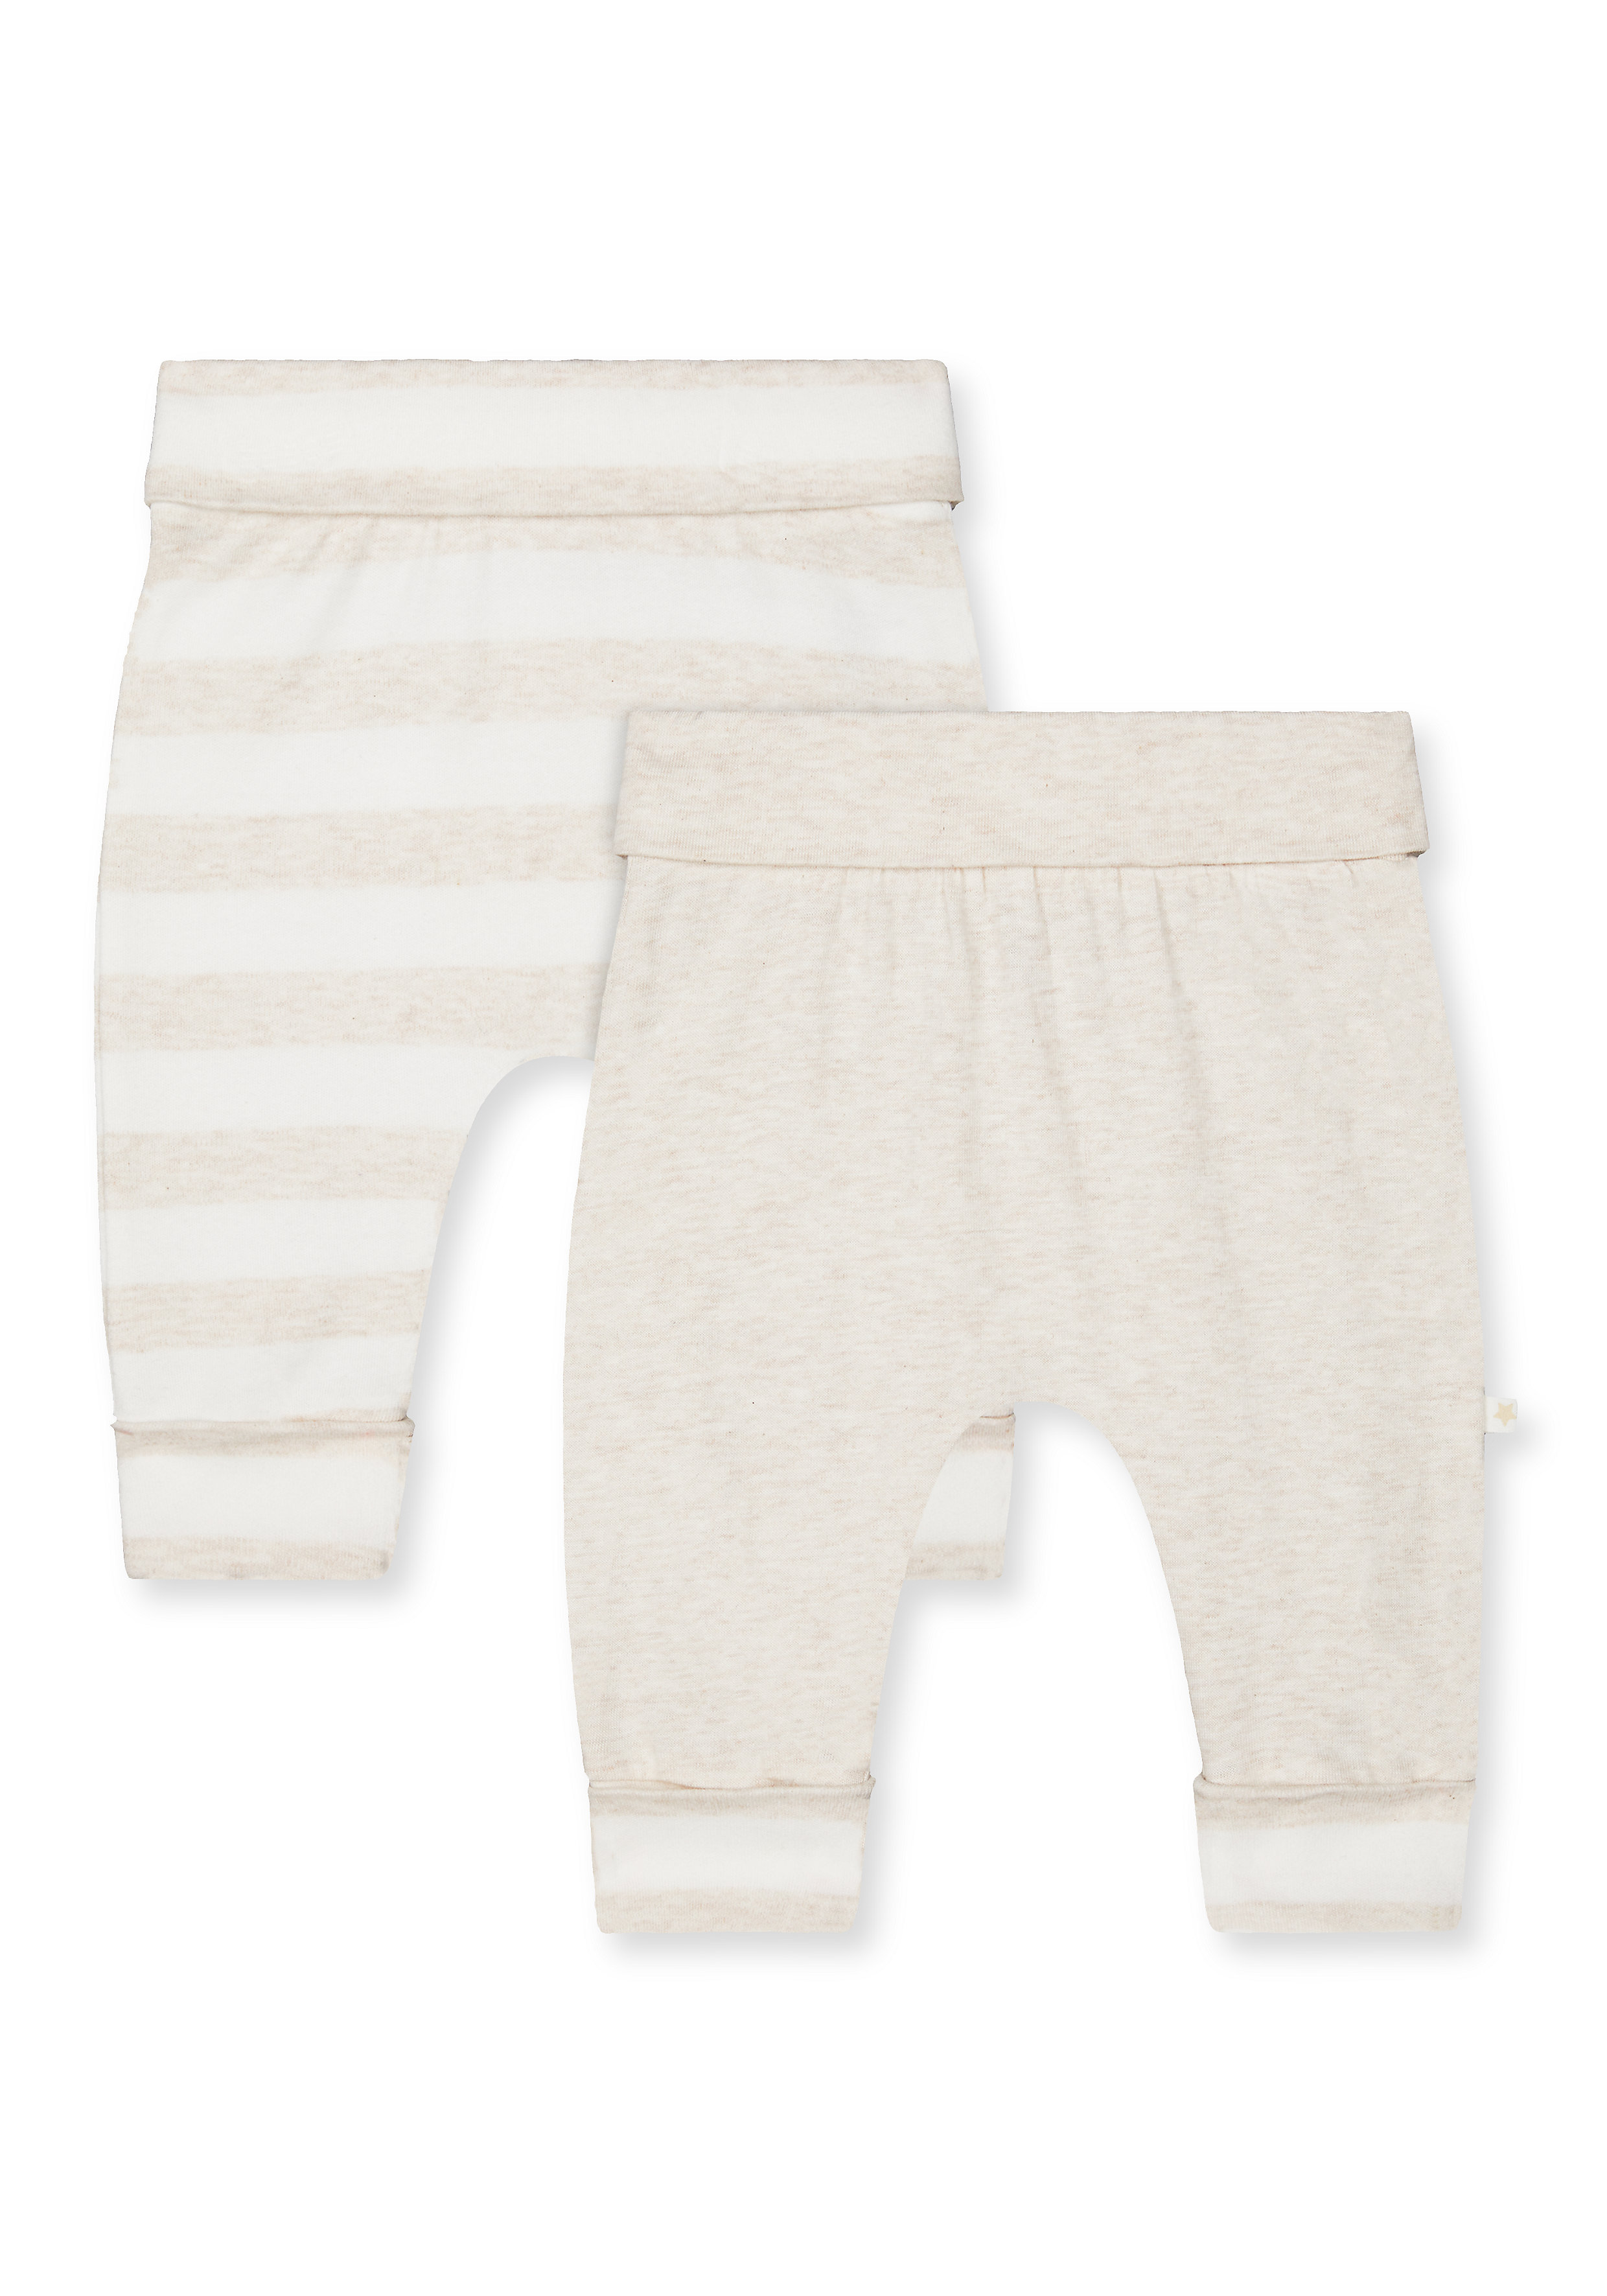 Mothercare | Unisex Joggers Striped - Pack Of 2 - Beige